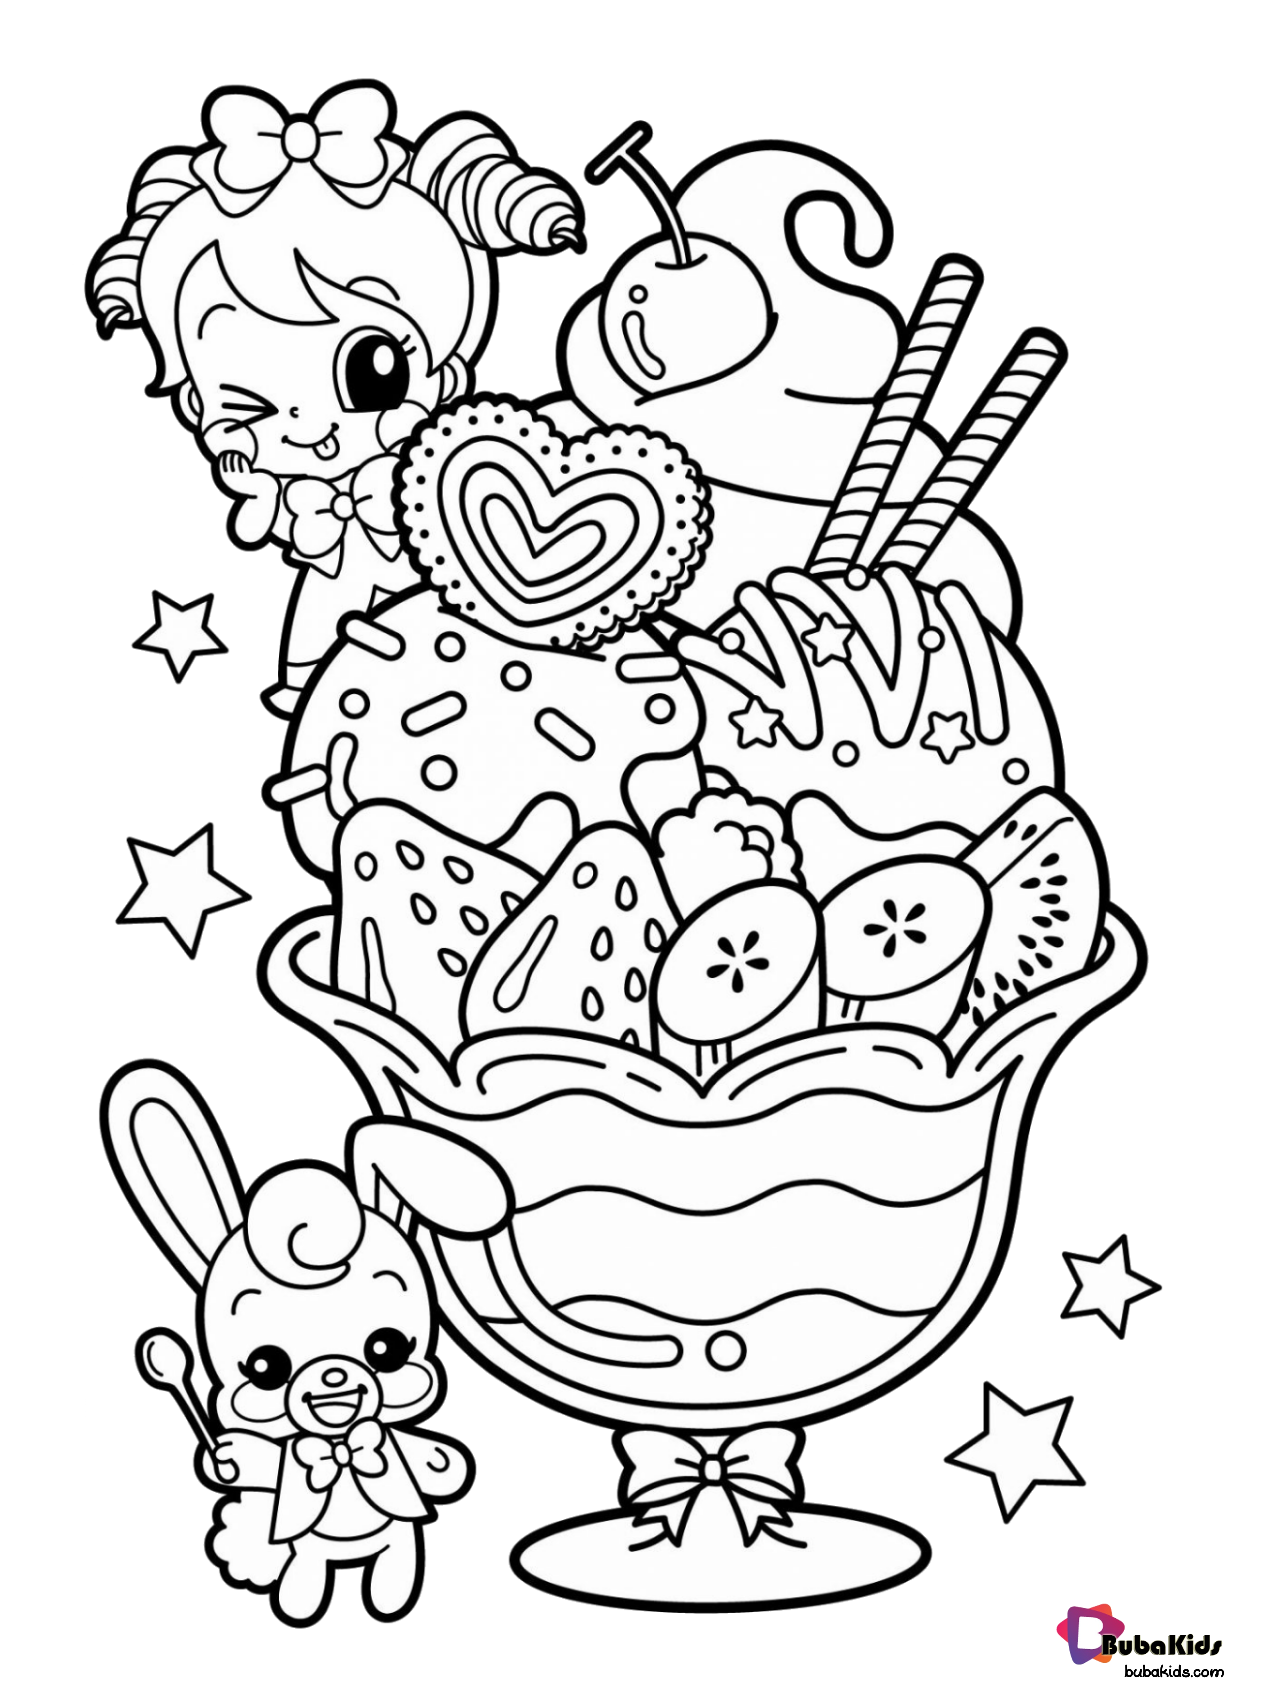 Puppy Coloring Pages For Kids Prinable Free Puppy Printables Wuppsy Com Puppy Coloring Pages Dog Coloring Page Animal Coloring Books